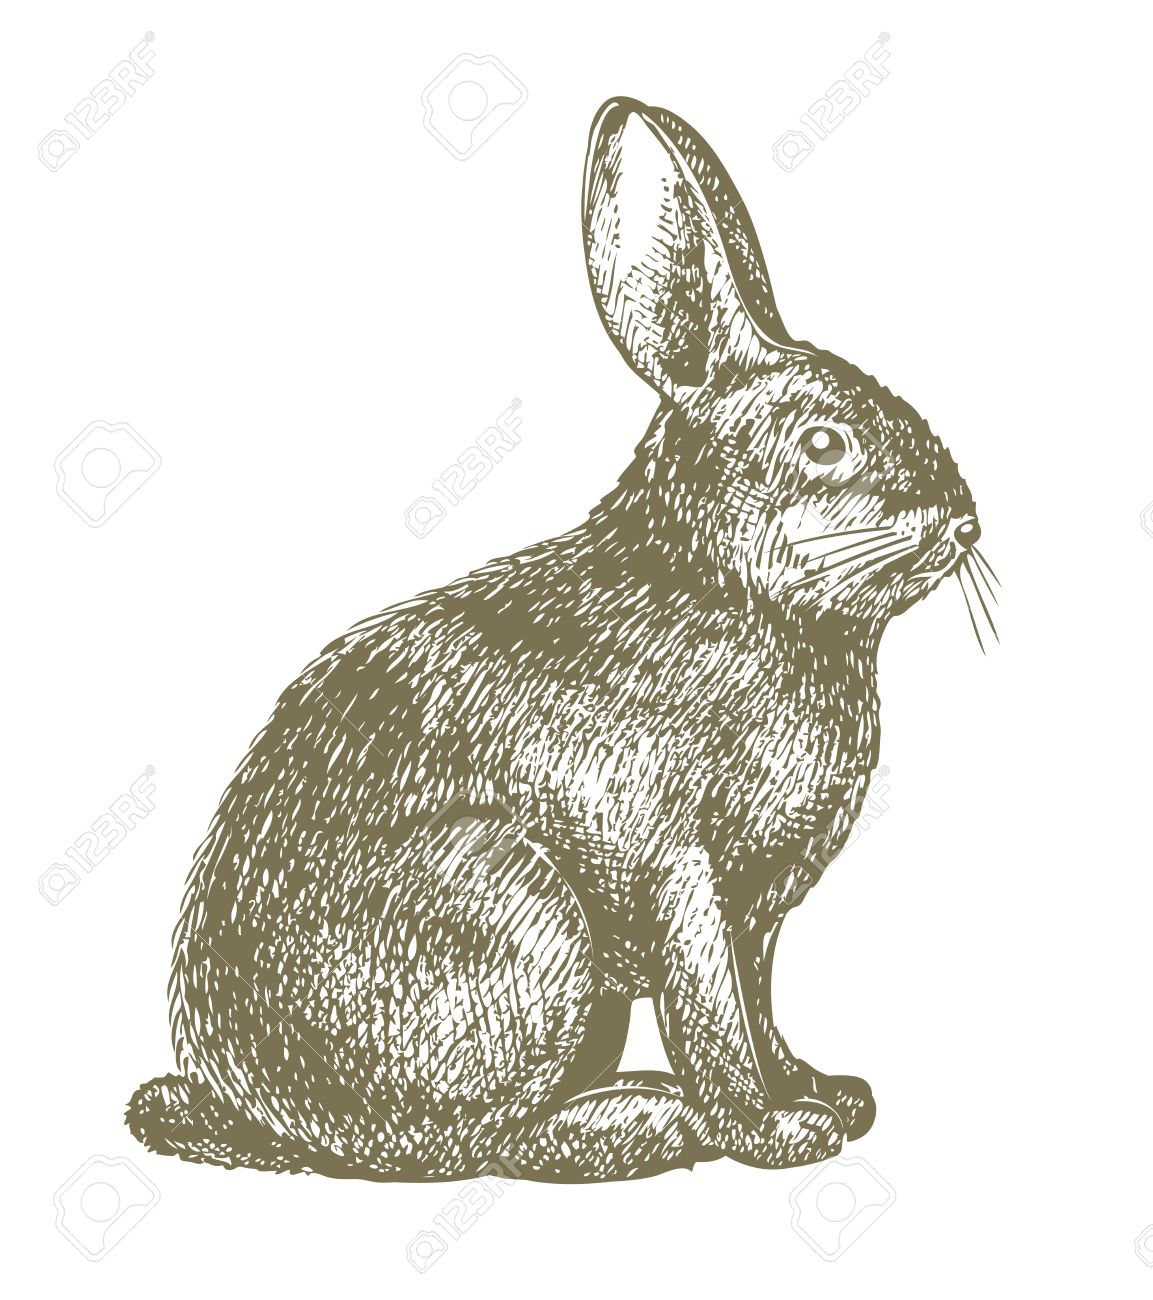 1153x1300 Rabbit Drawing Royalty Free Cliparts, Vectors, And Stock